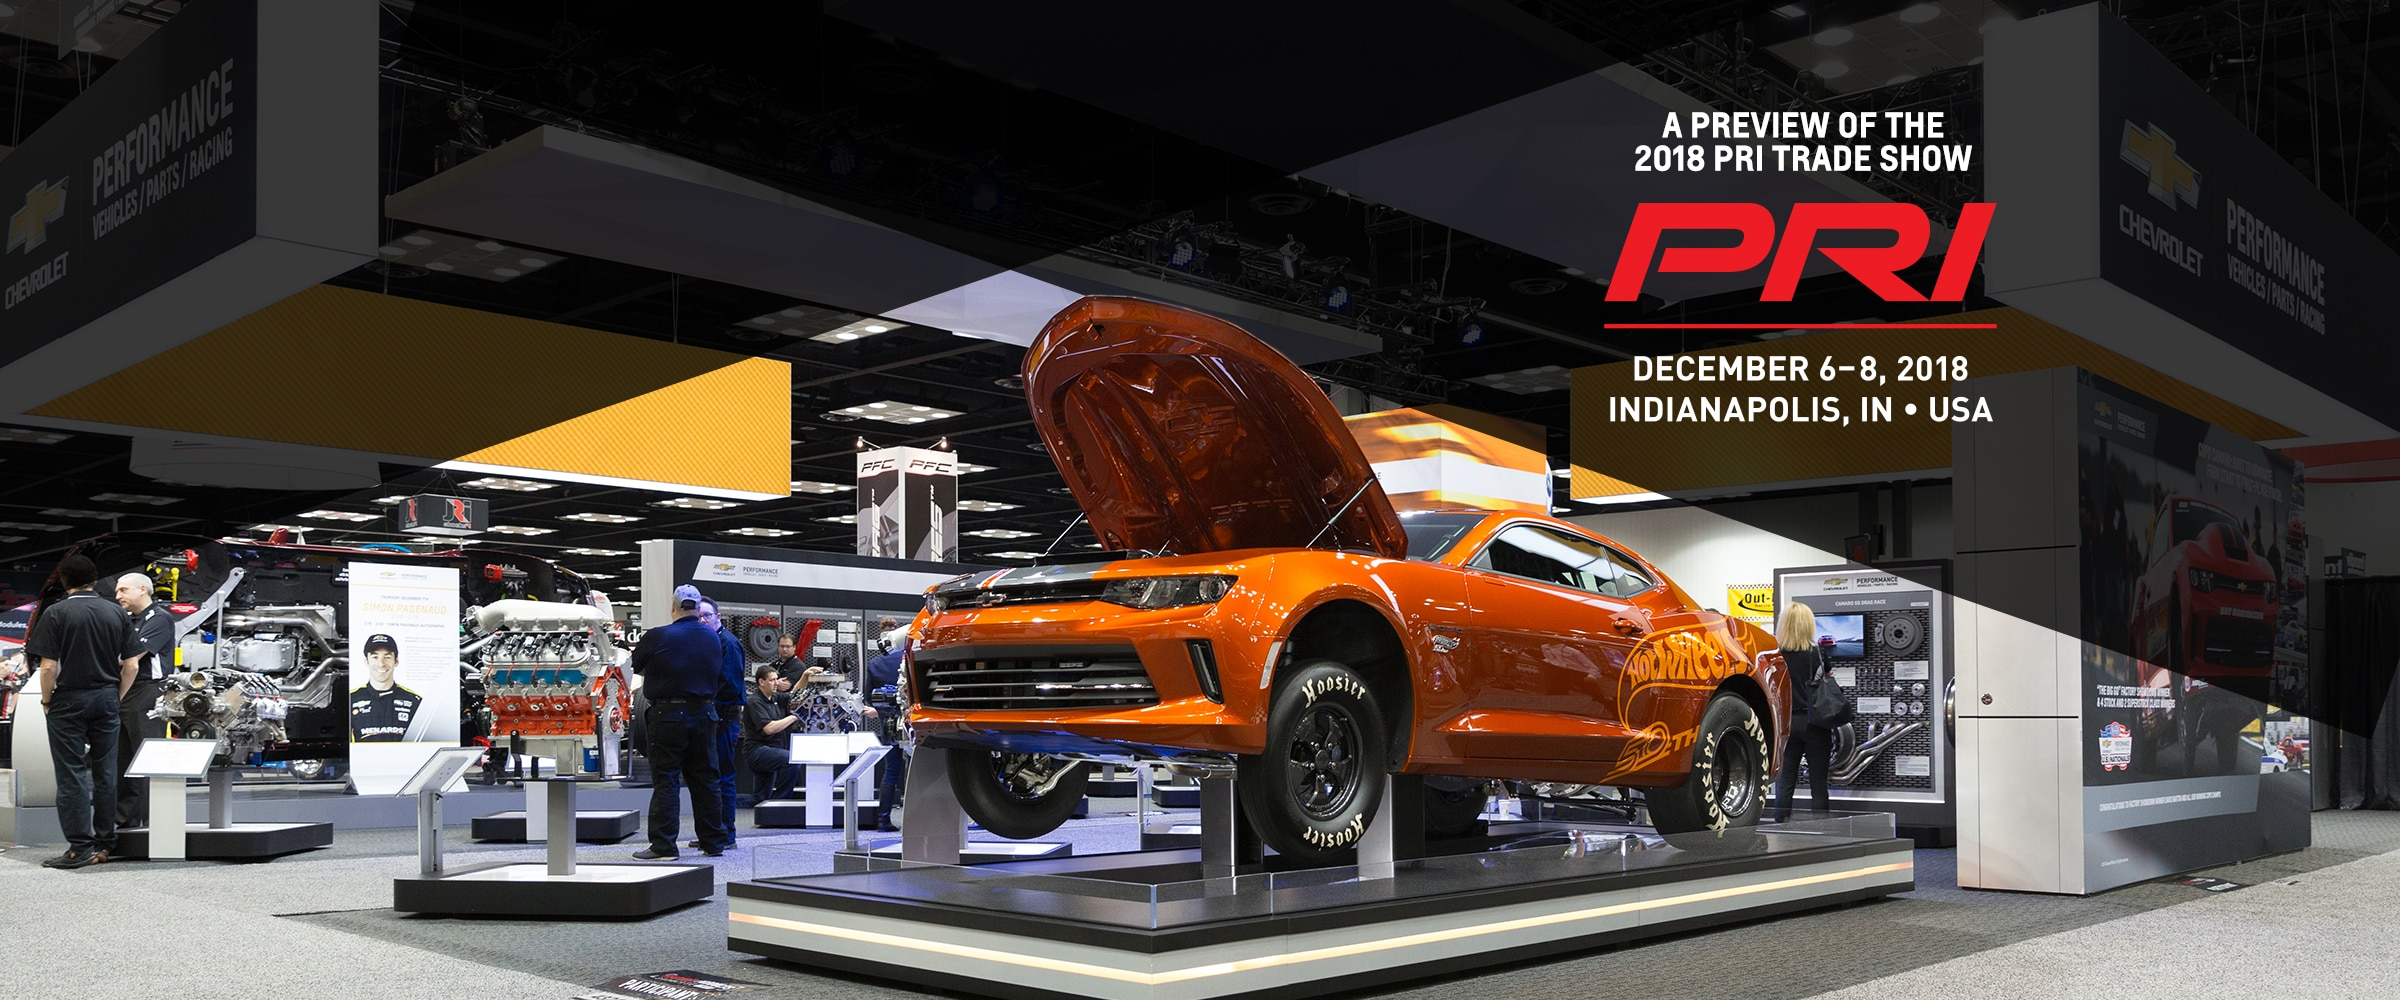 Parts, News, Events, Chevrolet Performance, Chevy, Chevrolet, Performance Racing Industry, PRI, PRI Trade Show, Indianapolis, Indiana Convention Center, Racing, Motorsports